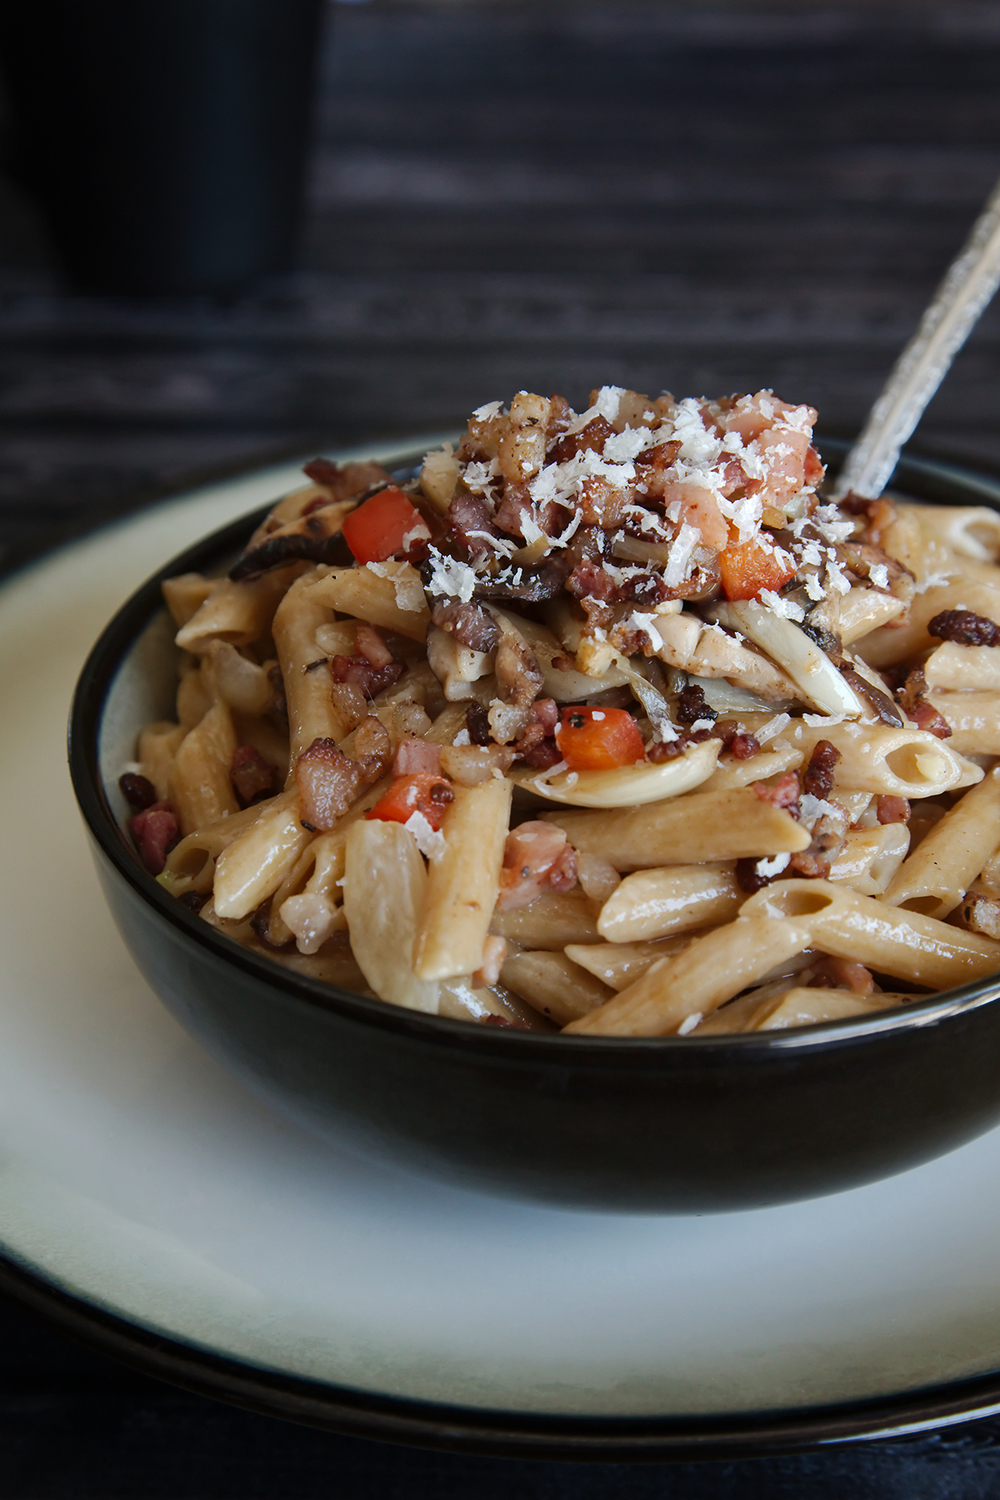 Whole Wheat Penne with Caramelized Vidalia Onion, Fennel, and Pancetta